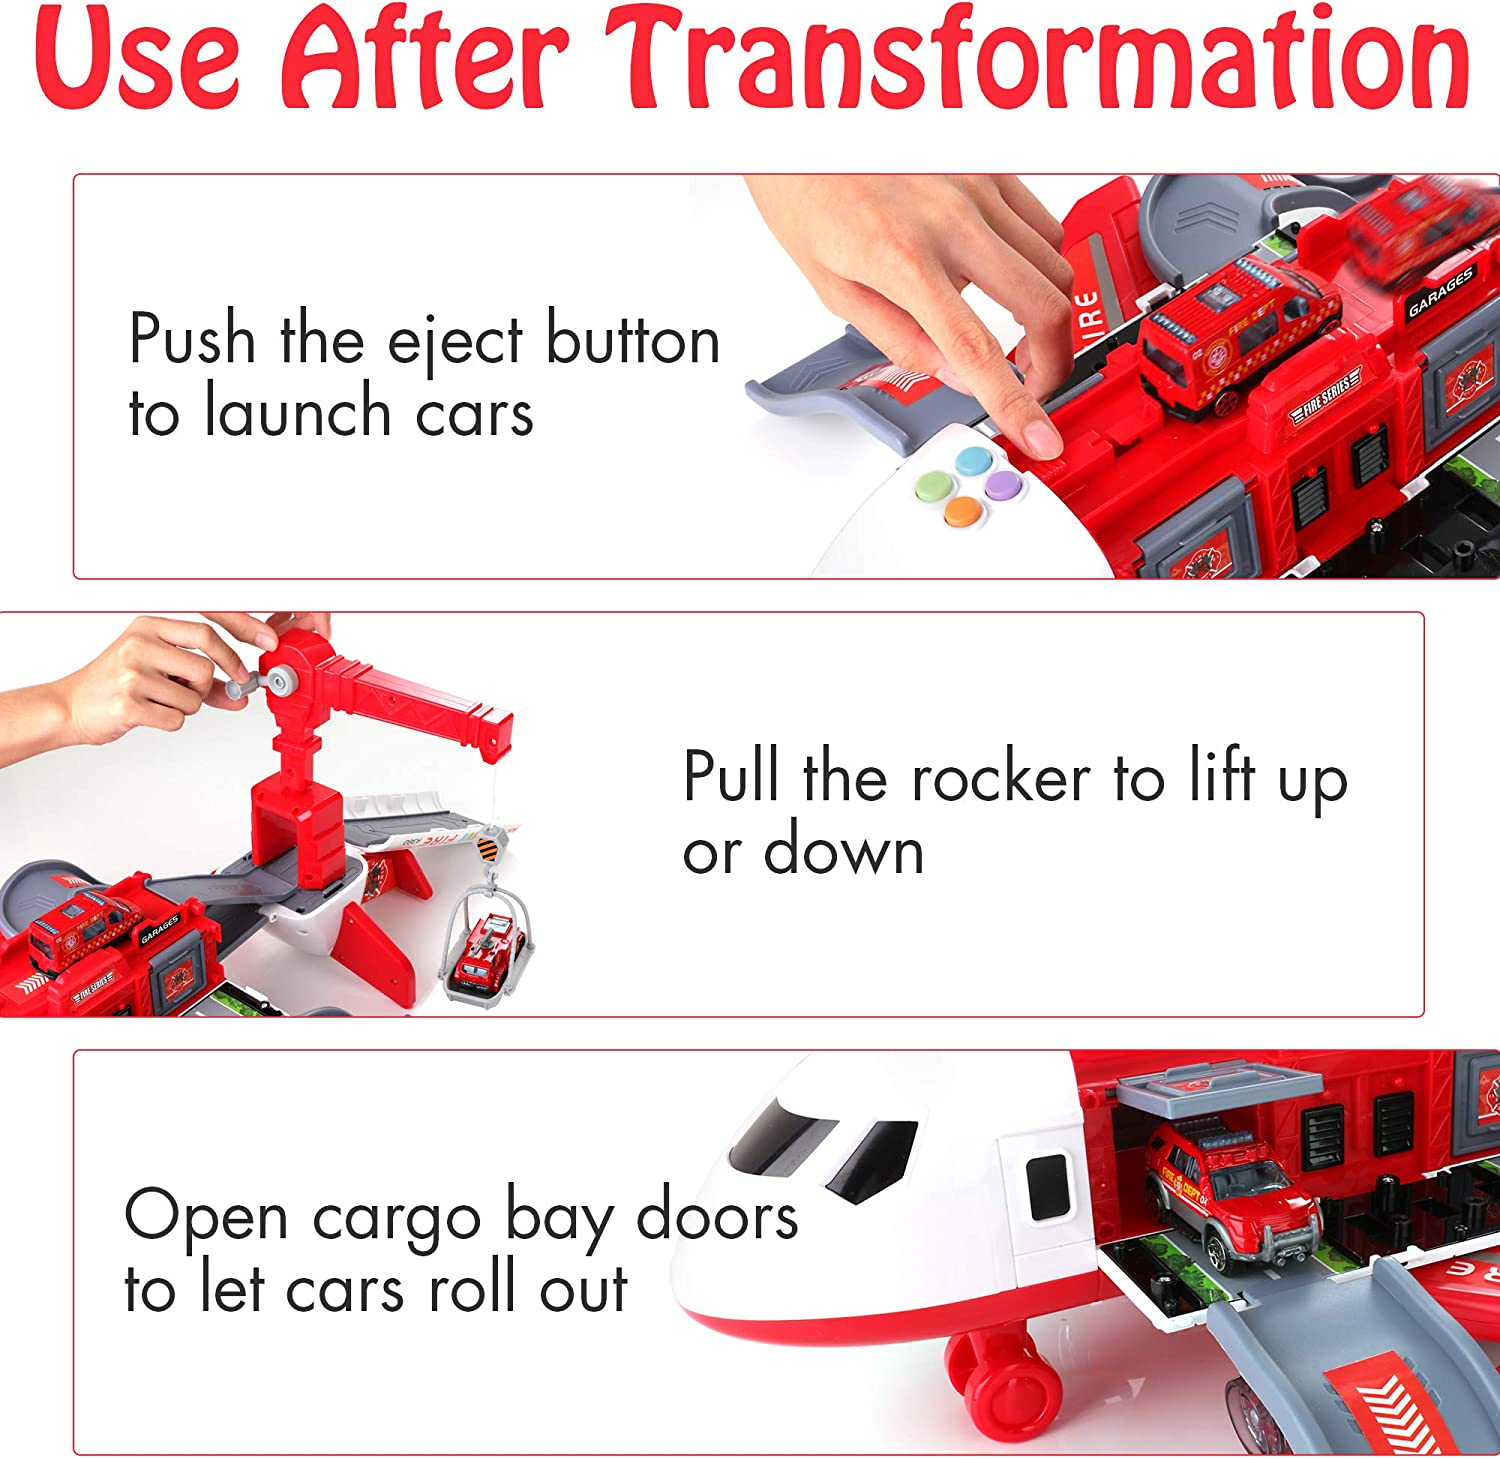 4 Fire Fighting Vehicles Large Theme Airplane Educational Toy Vehicle Play Set Girls for Toddler Boys Girls Age 3+ 11 Road Signs KIDWILL Car Toys Set with Transport Cargo Airplane